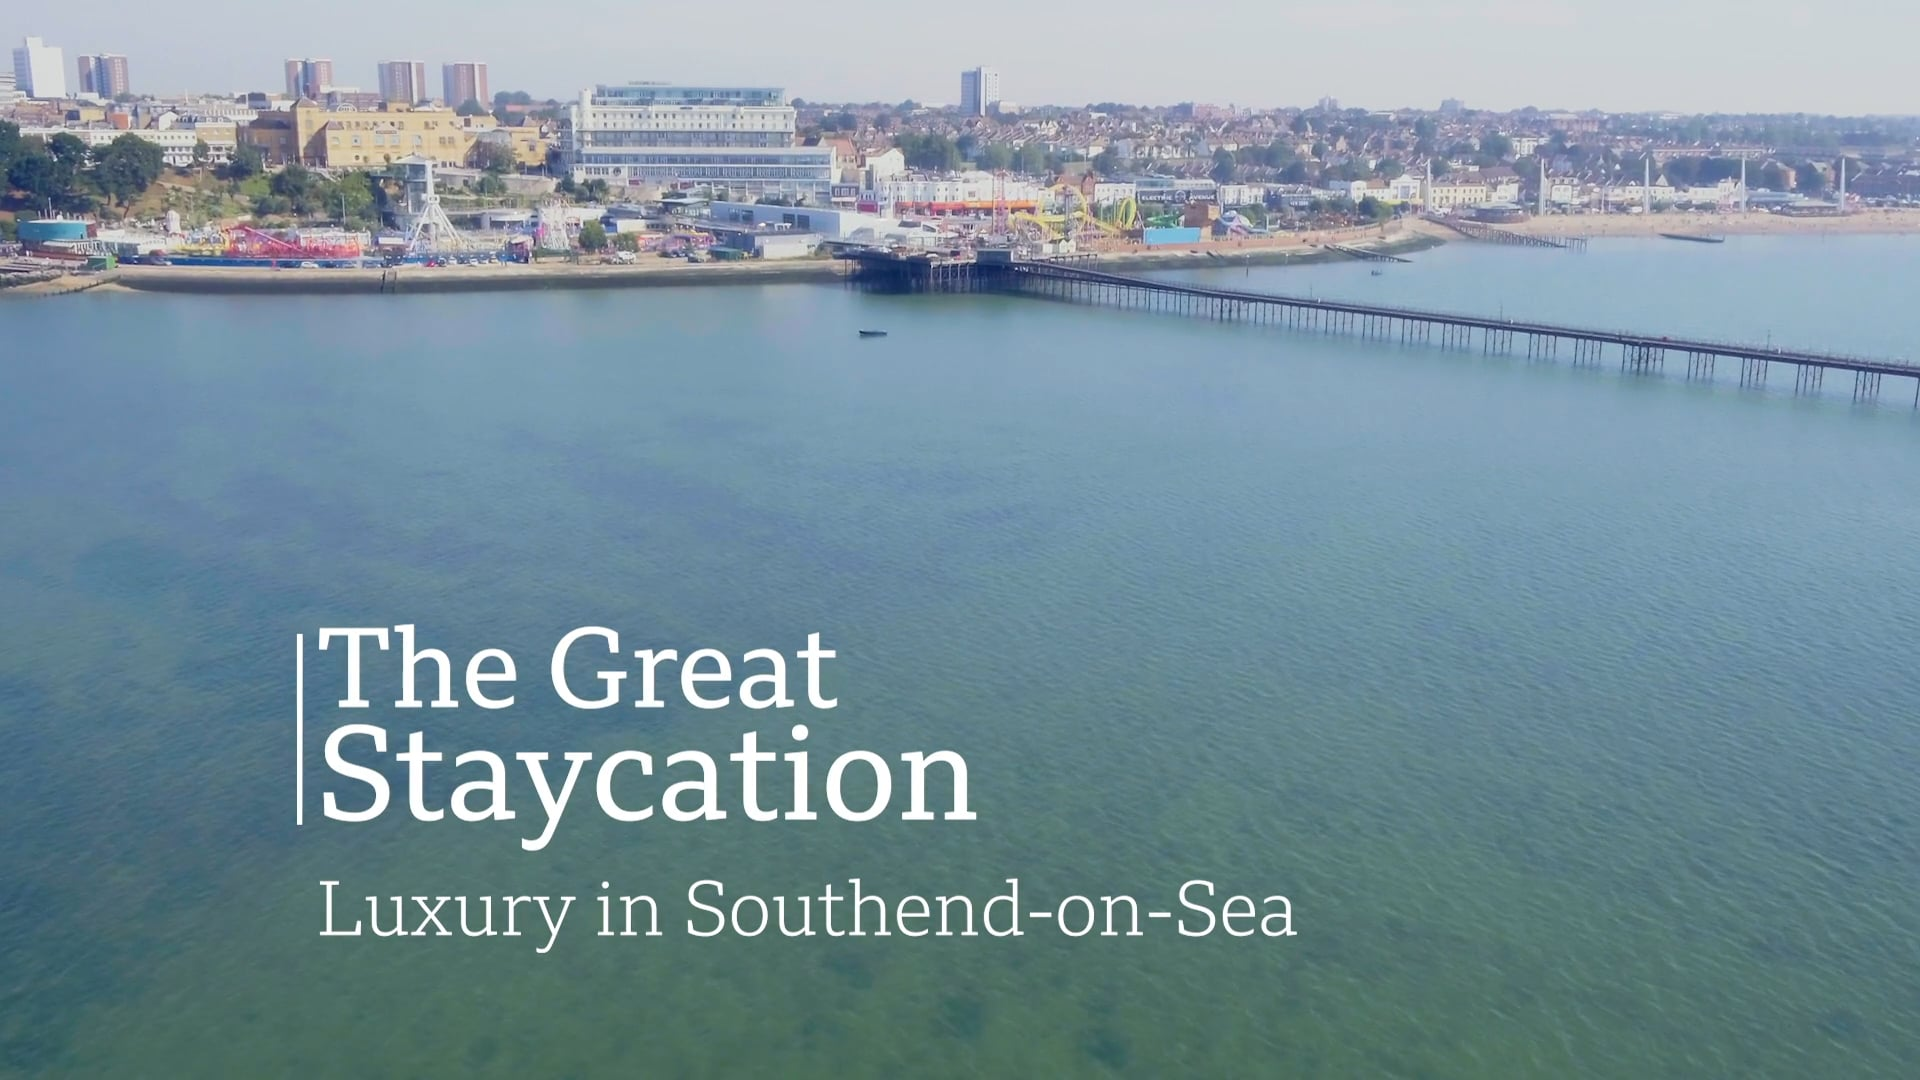 BBC - THE GREAT STAYCATION: LUXURY IN SOUTHEND ON SEA - TRAILER